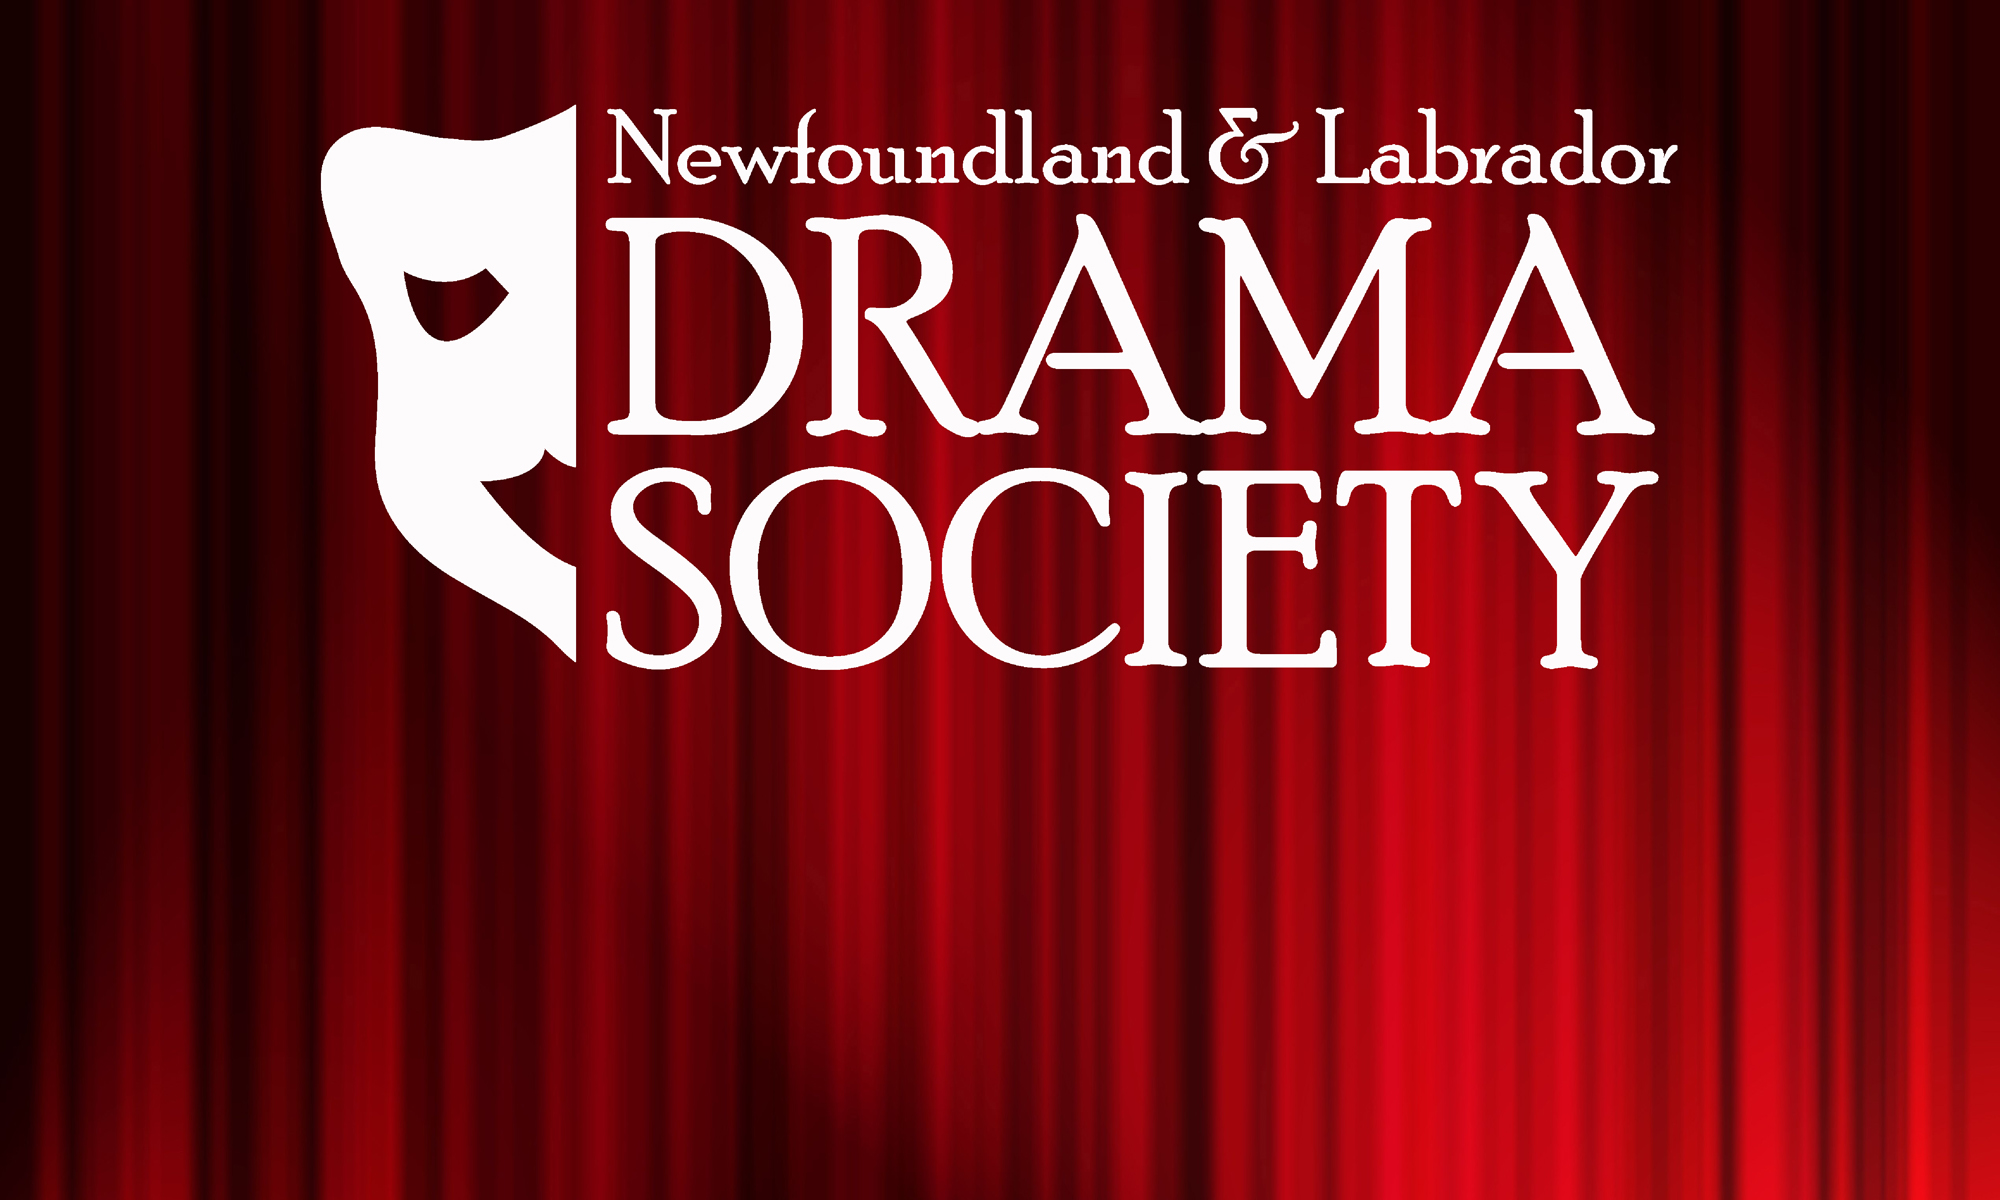 Official site of the Newfoundland and Labrador Drama Society